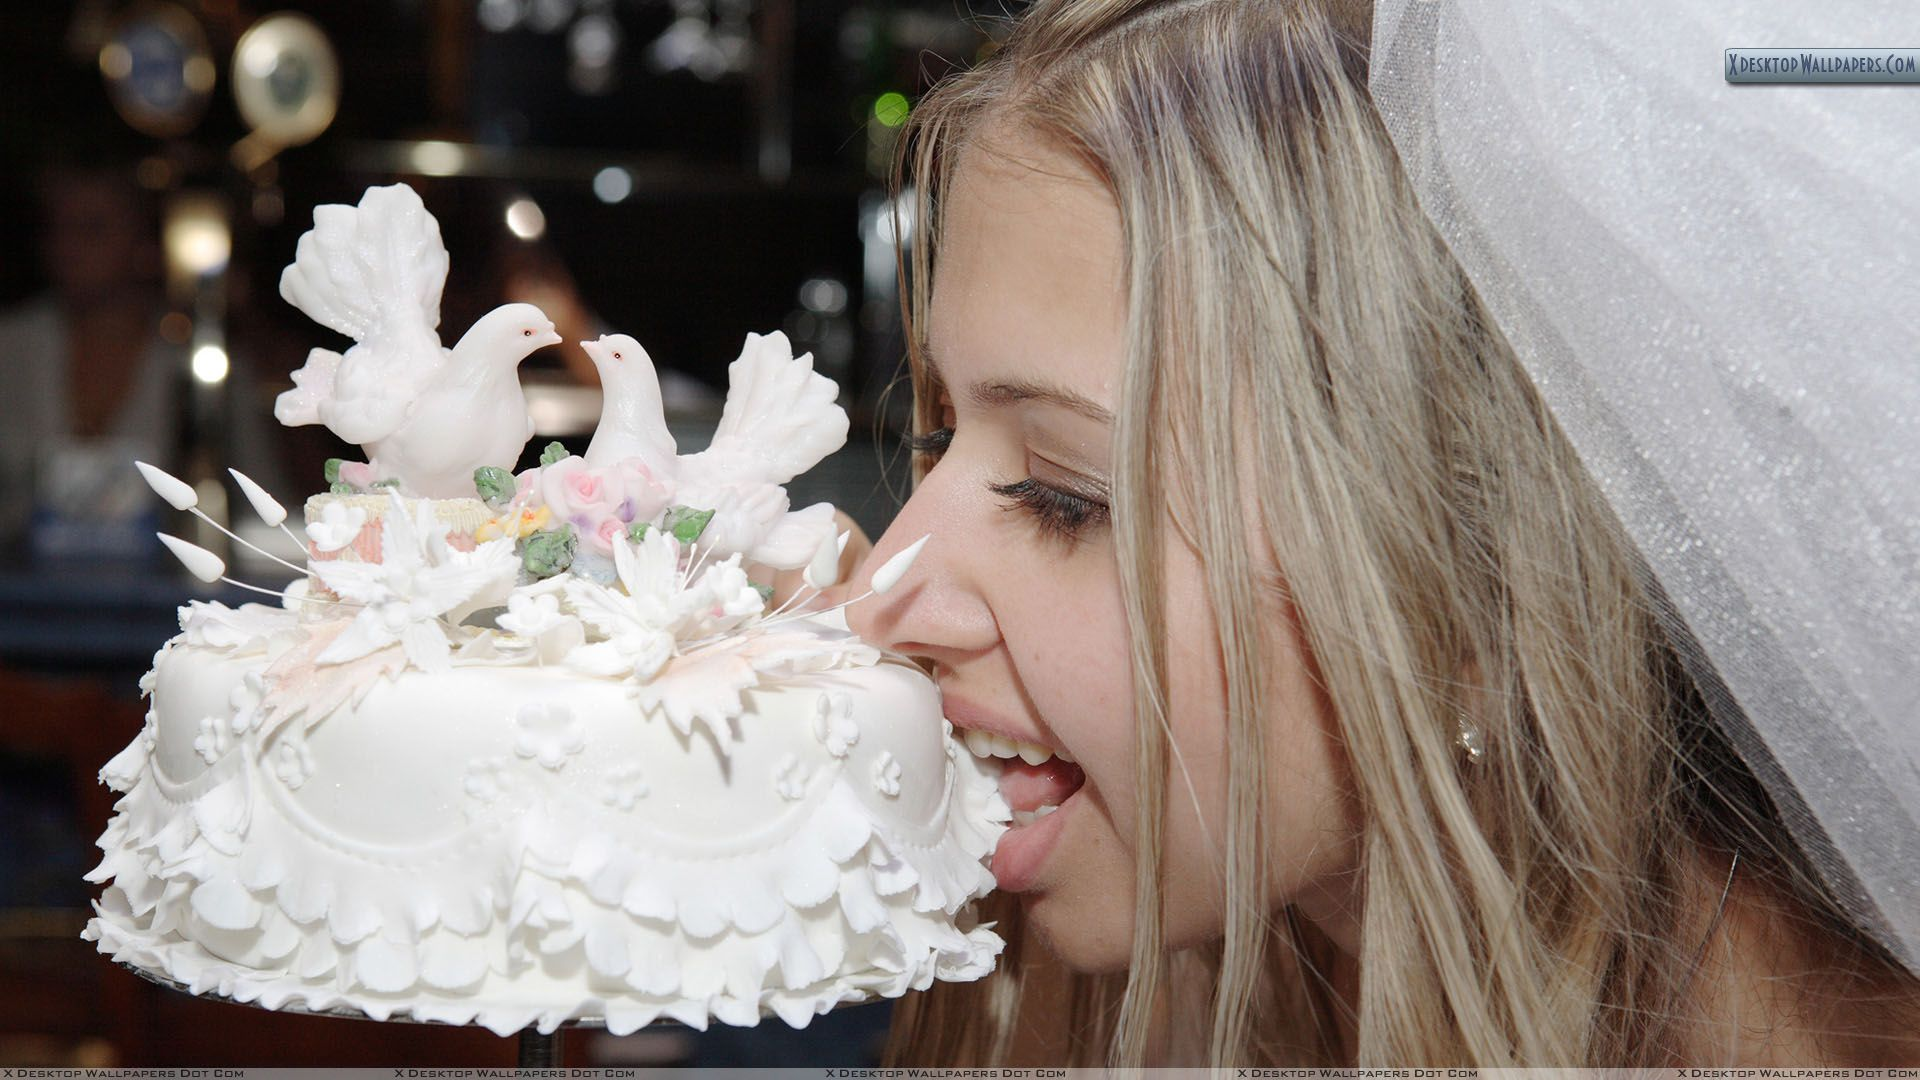 Cakes images wedding cake hd wallpaper and background photos - Find This Pin And More On Wallpapers And Backgrounds Images Of Wedding Cakes